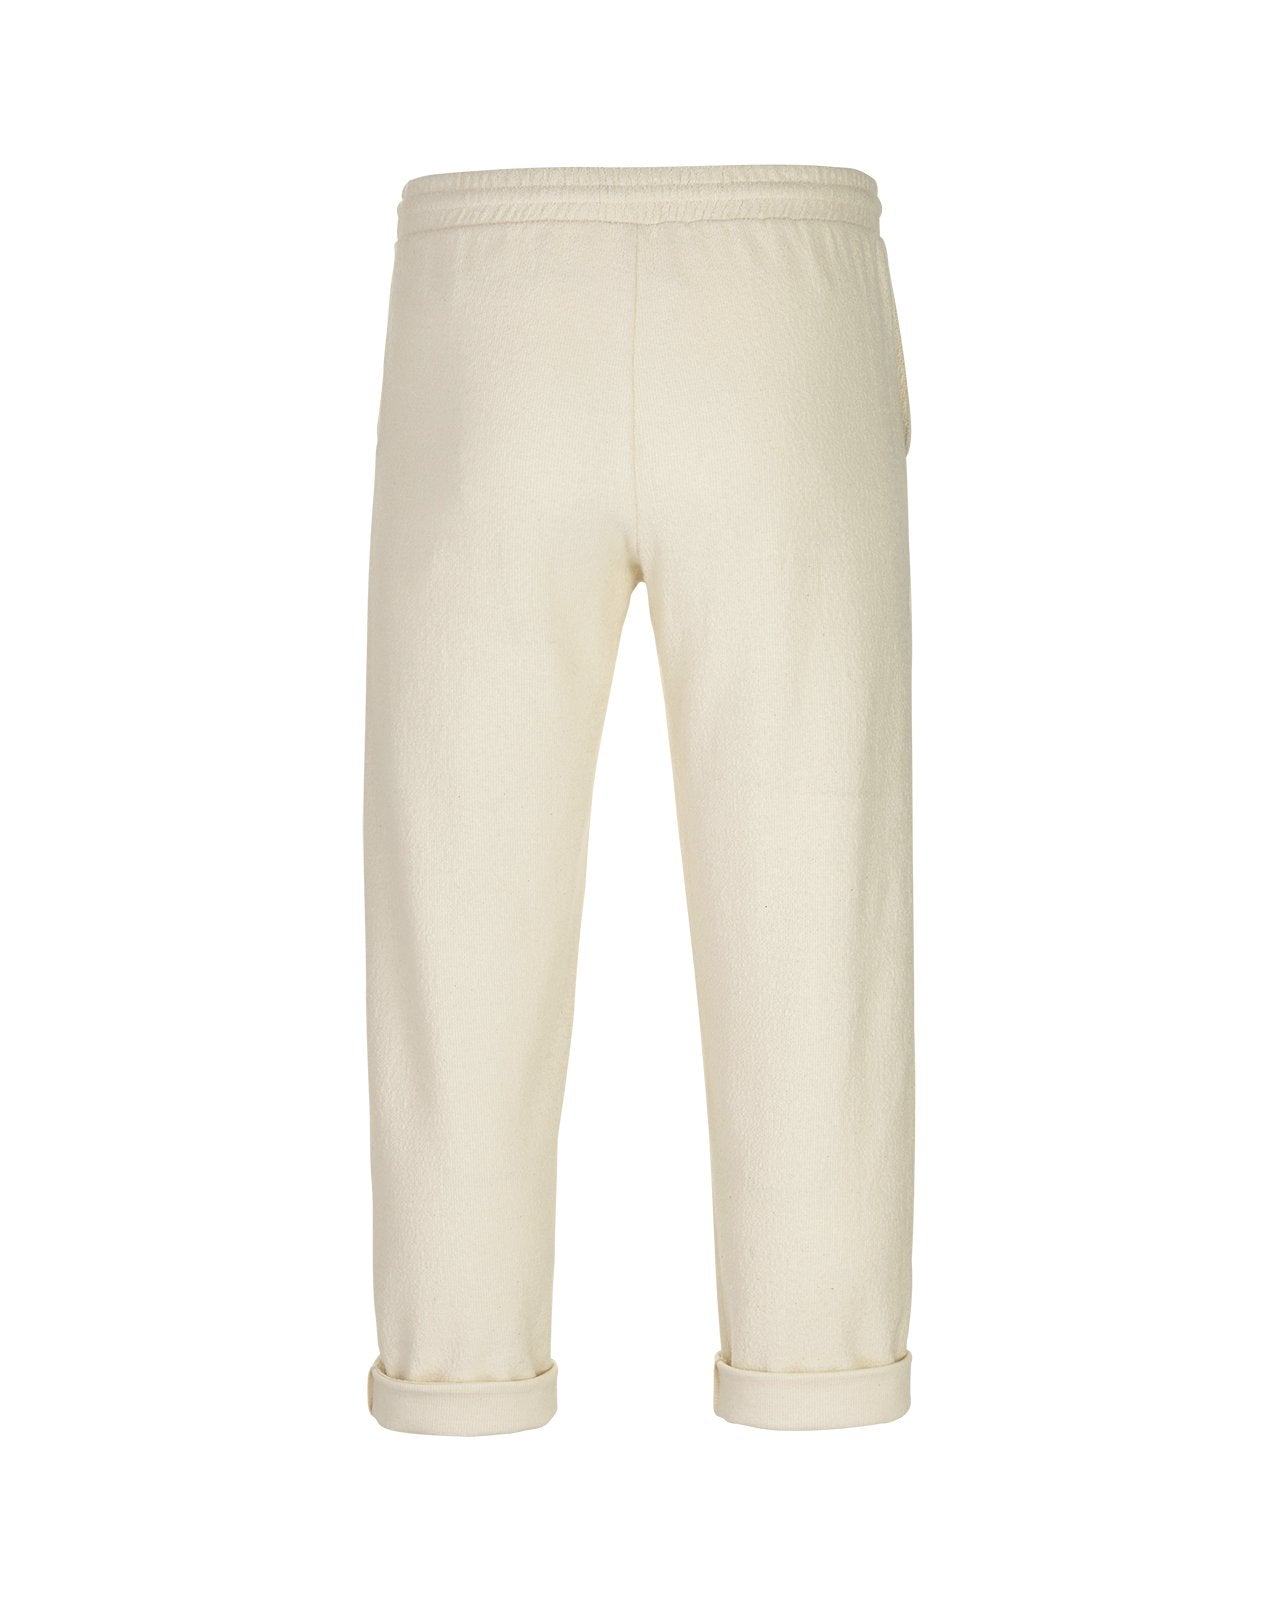 Textured Pants – Beige